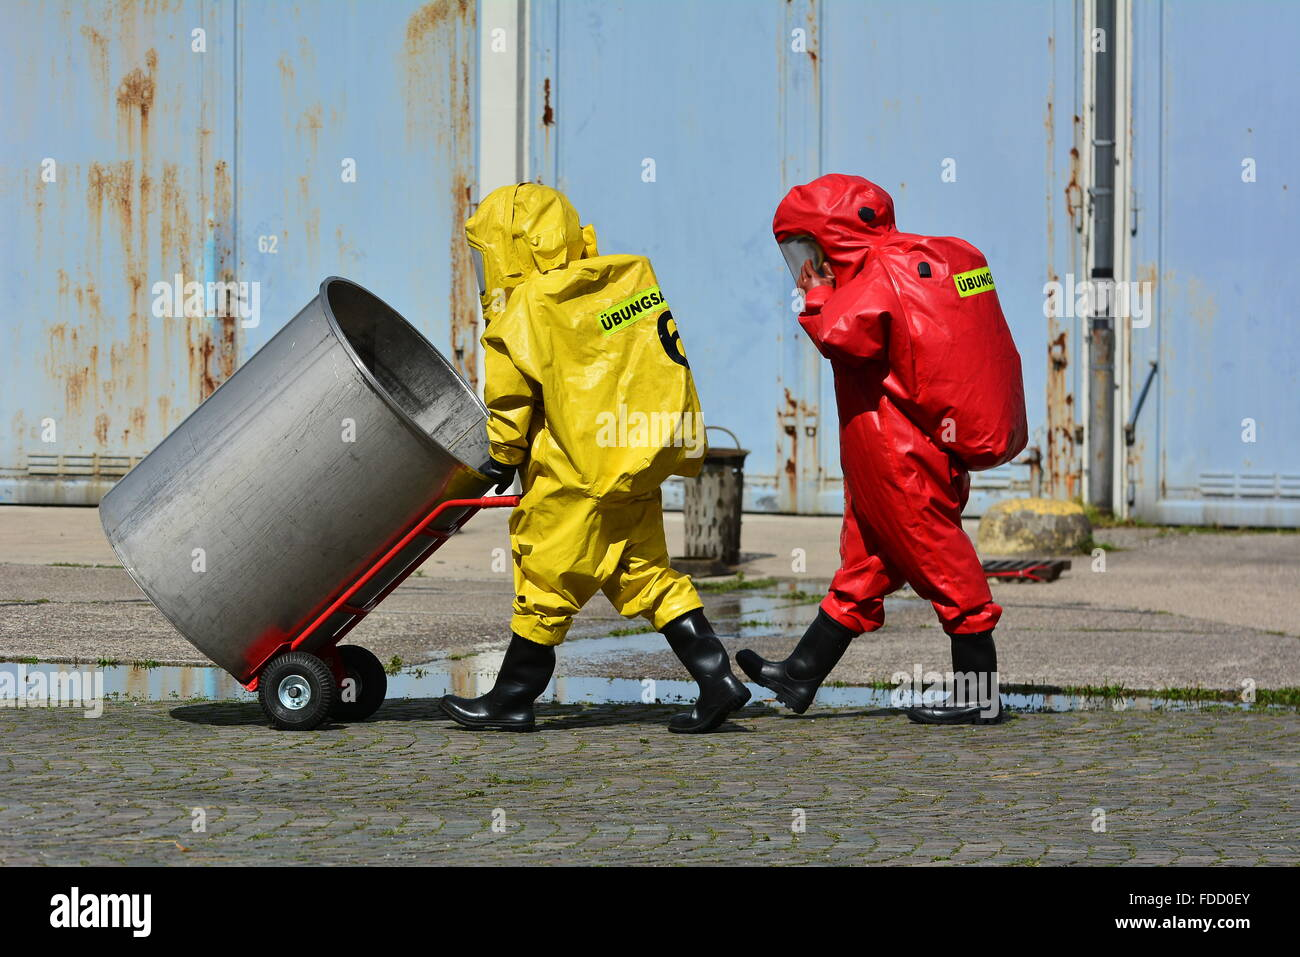 Workers in protective uniform,mask,gloves and boots  transport barrels of chemicals - Stock Image